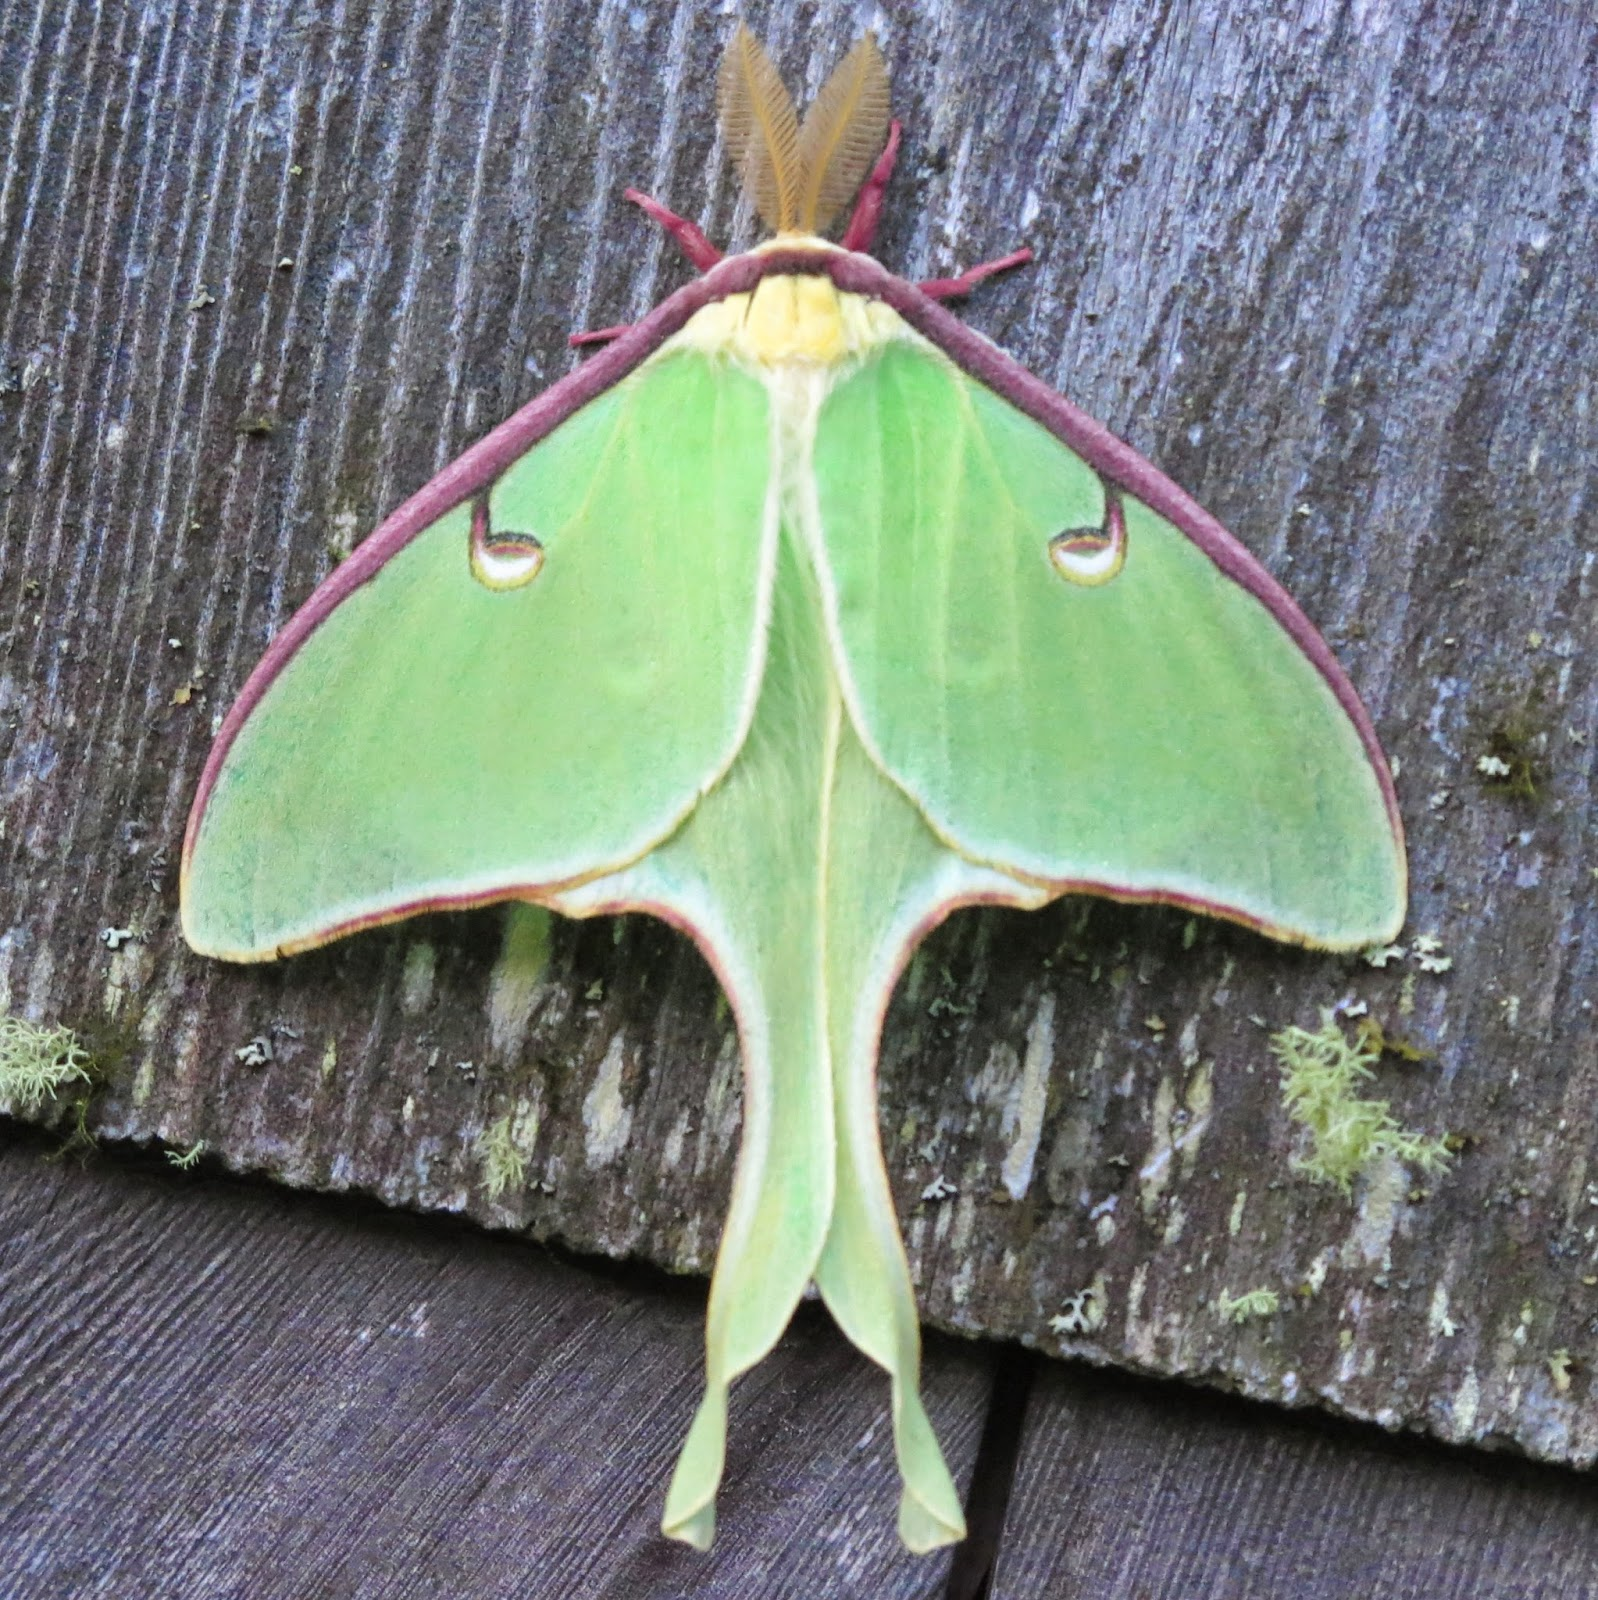 Maynard life outdoors and hidden history of maynard luna moth luna moth on old wood siding nobleboro me click on any photo to enlarge buycottarizona